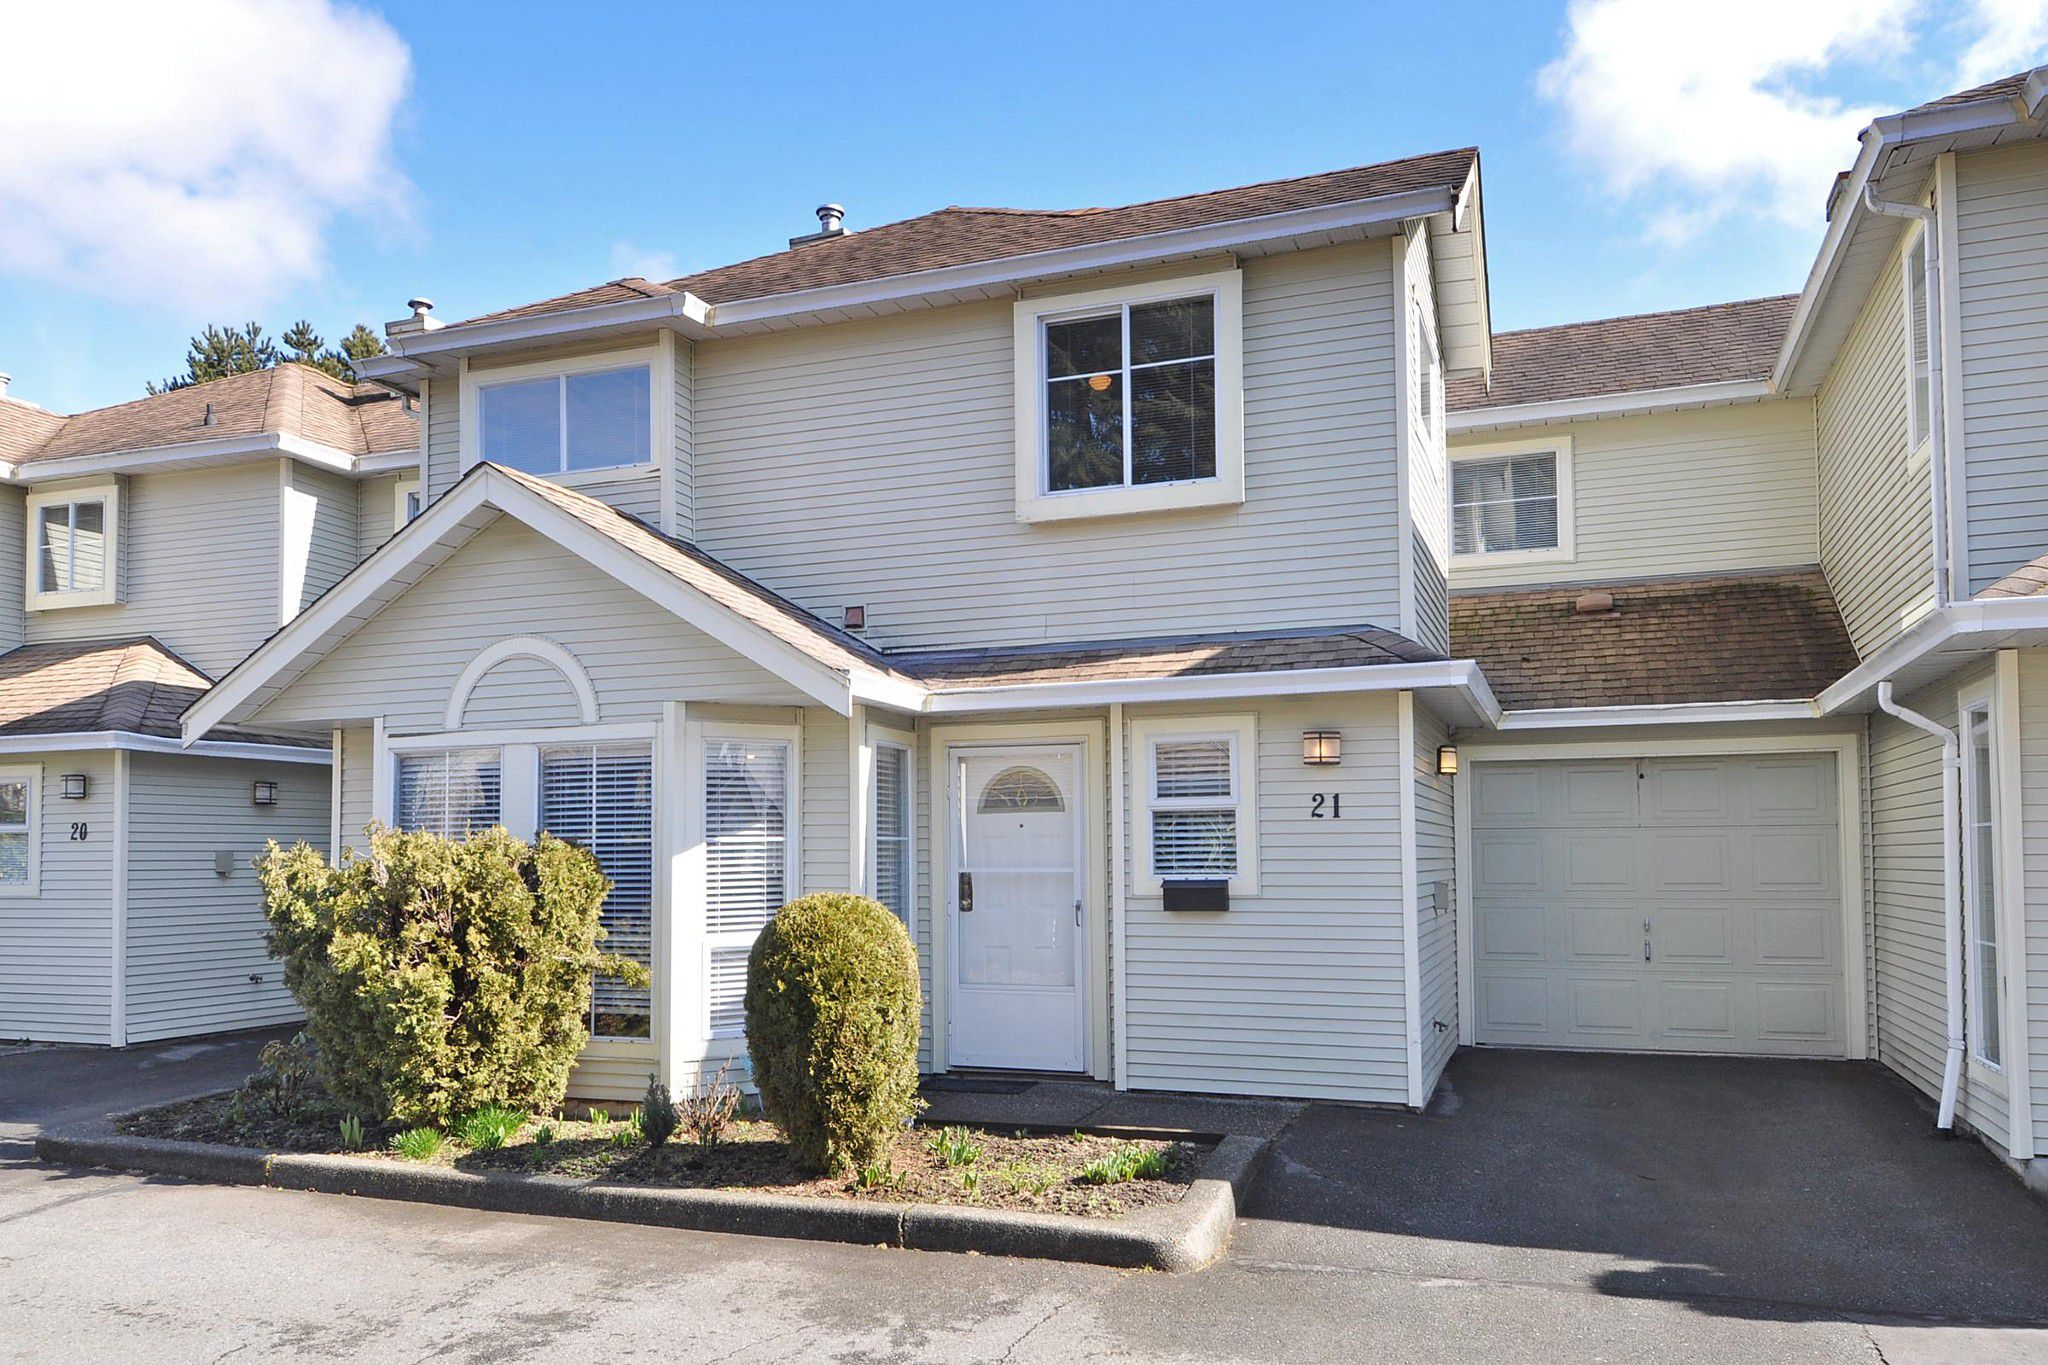 """Main Photo: 21 18951 FORD Road in Pitt Meadows: Central Meadows Townhouse for sale in """"PINE MEADOWS"""" : MLS®# R2346745"""